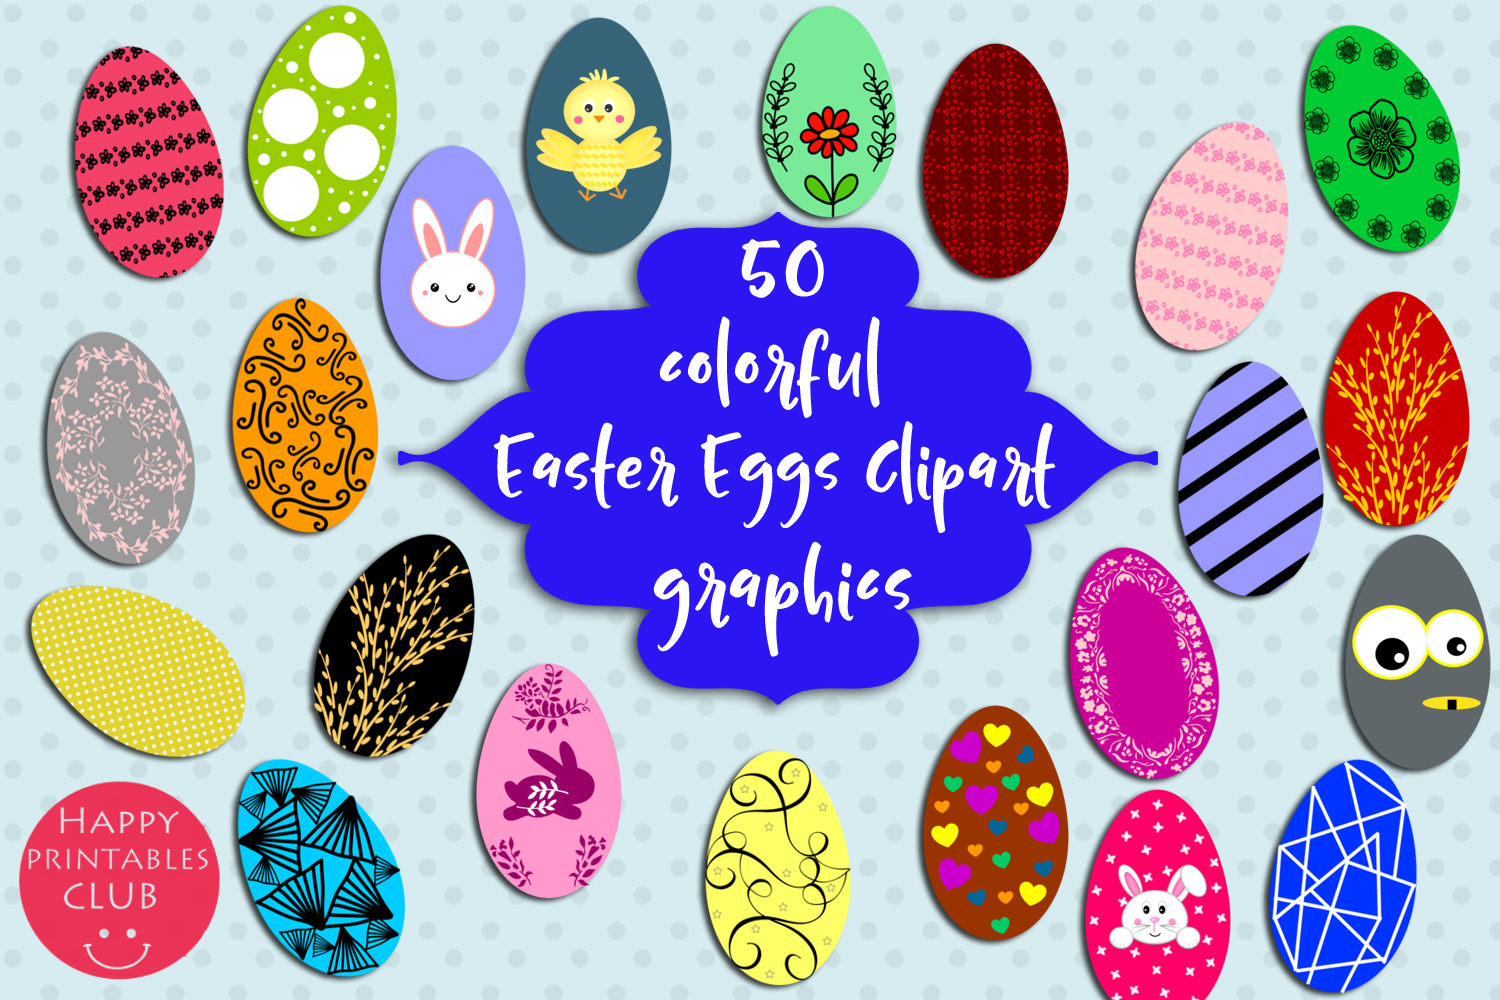 50 Colorful Easter Eggs Clipart-Cute Easter Eggs Clipart example image 1